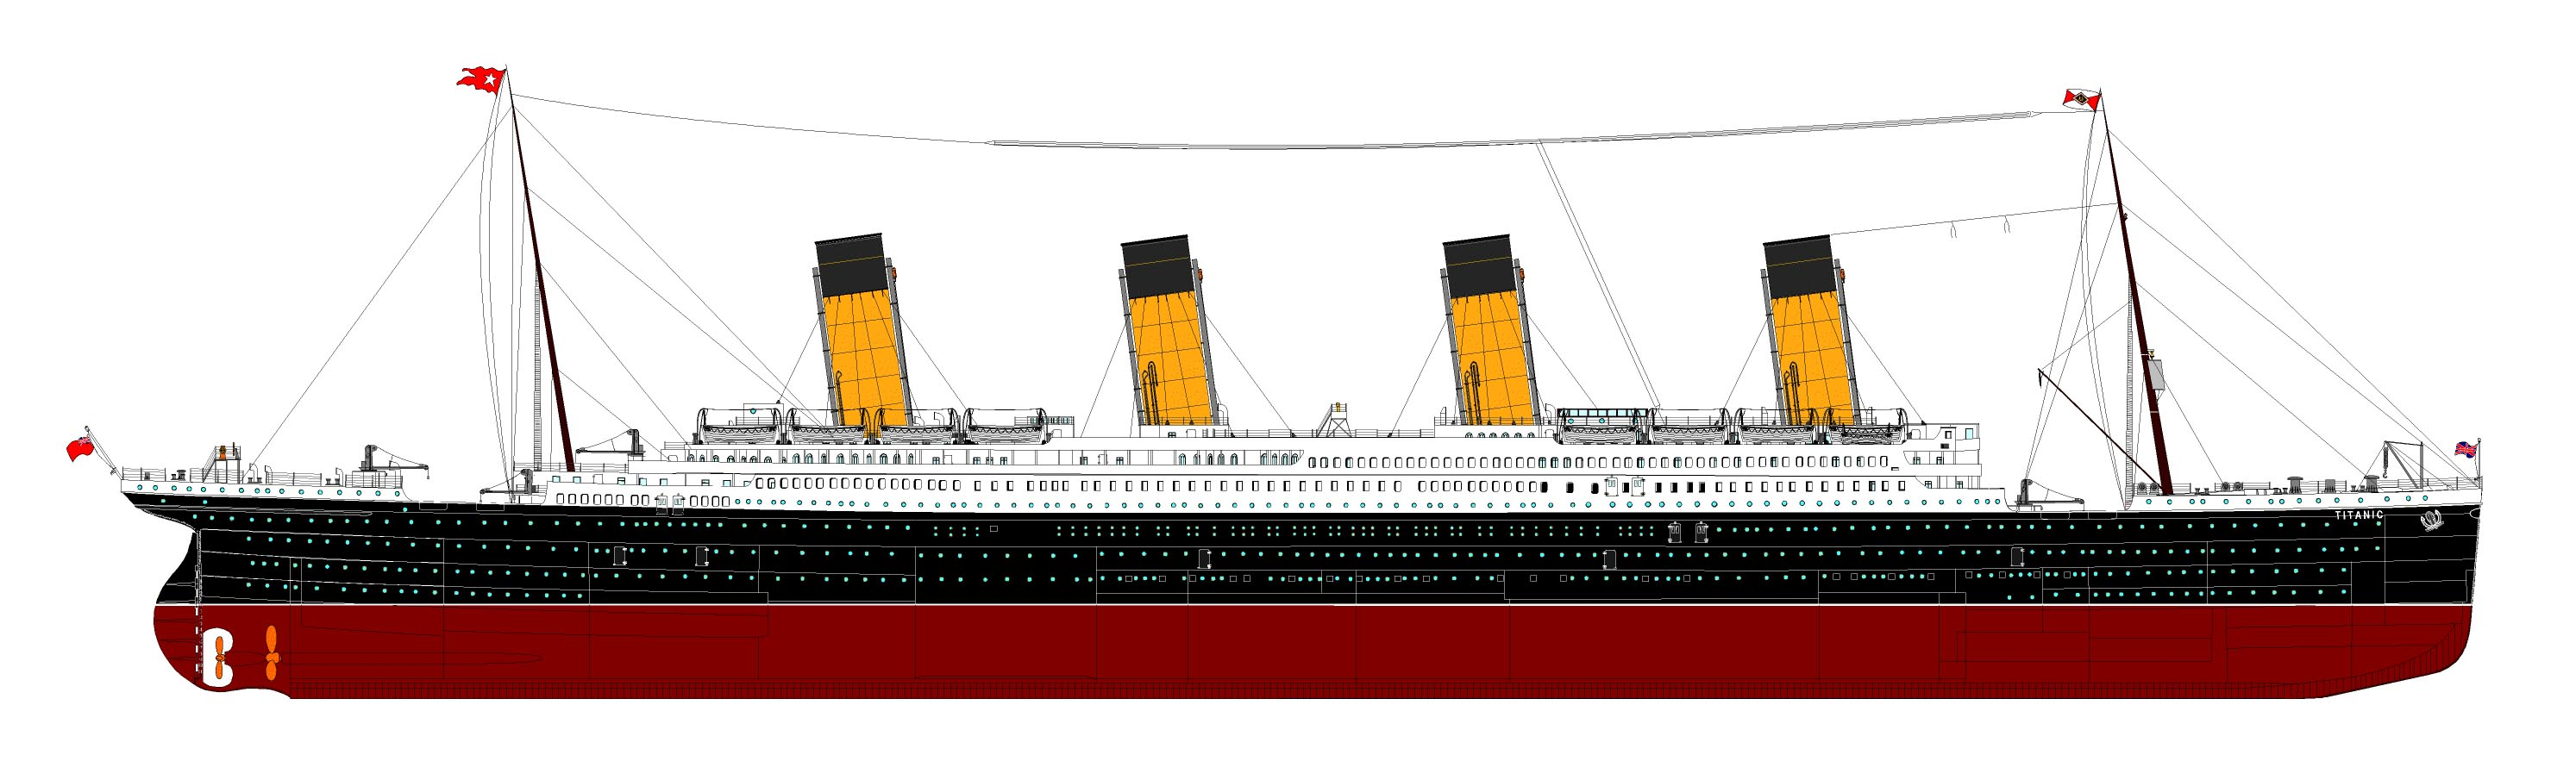 diagram of titanic ship ups wiring rms page three her full deck plan